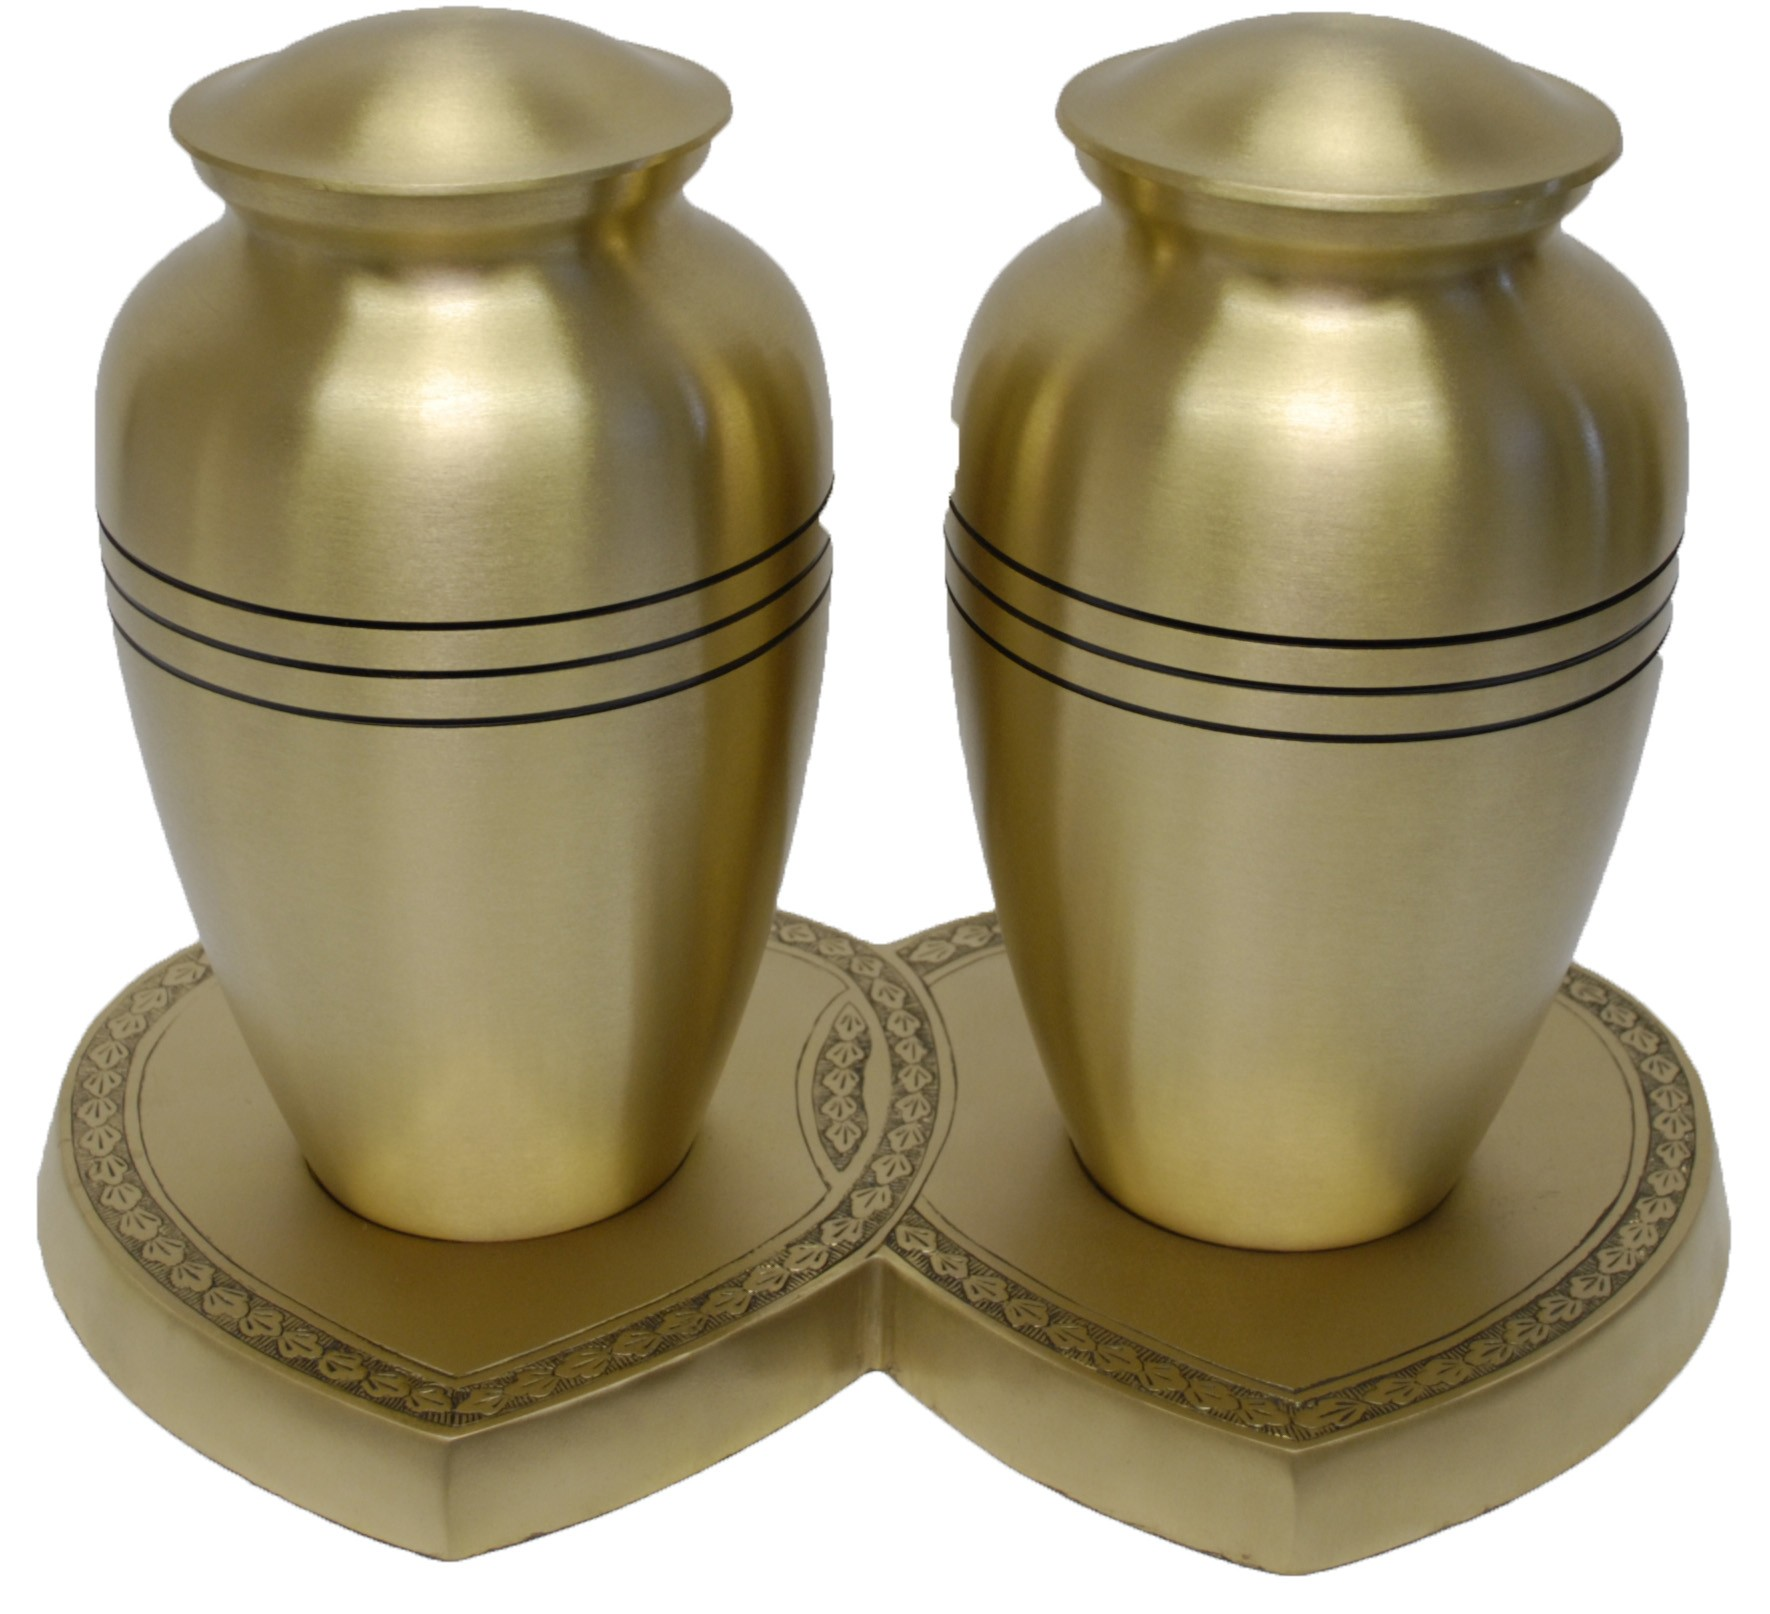 CHEADLE BRASS COMPANION CREMATION ASHES URN